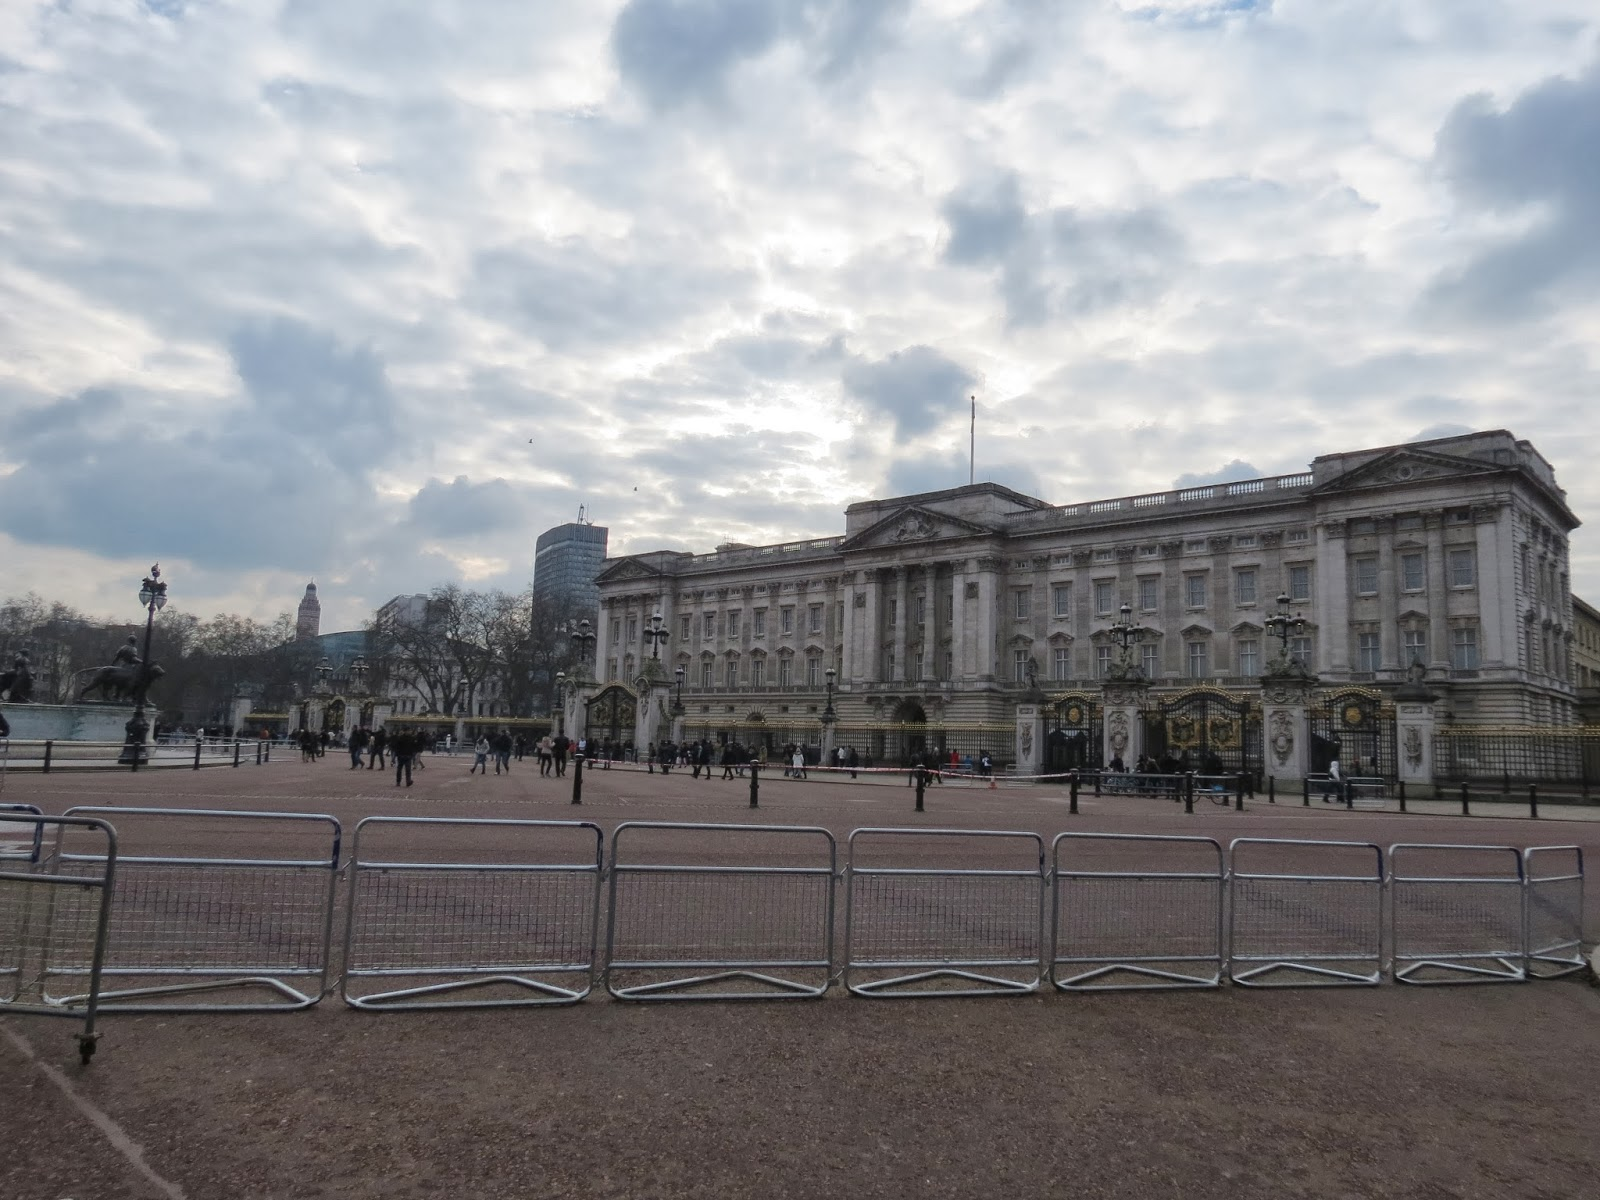 Buckingham palace winter